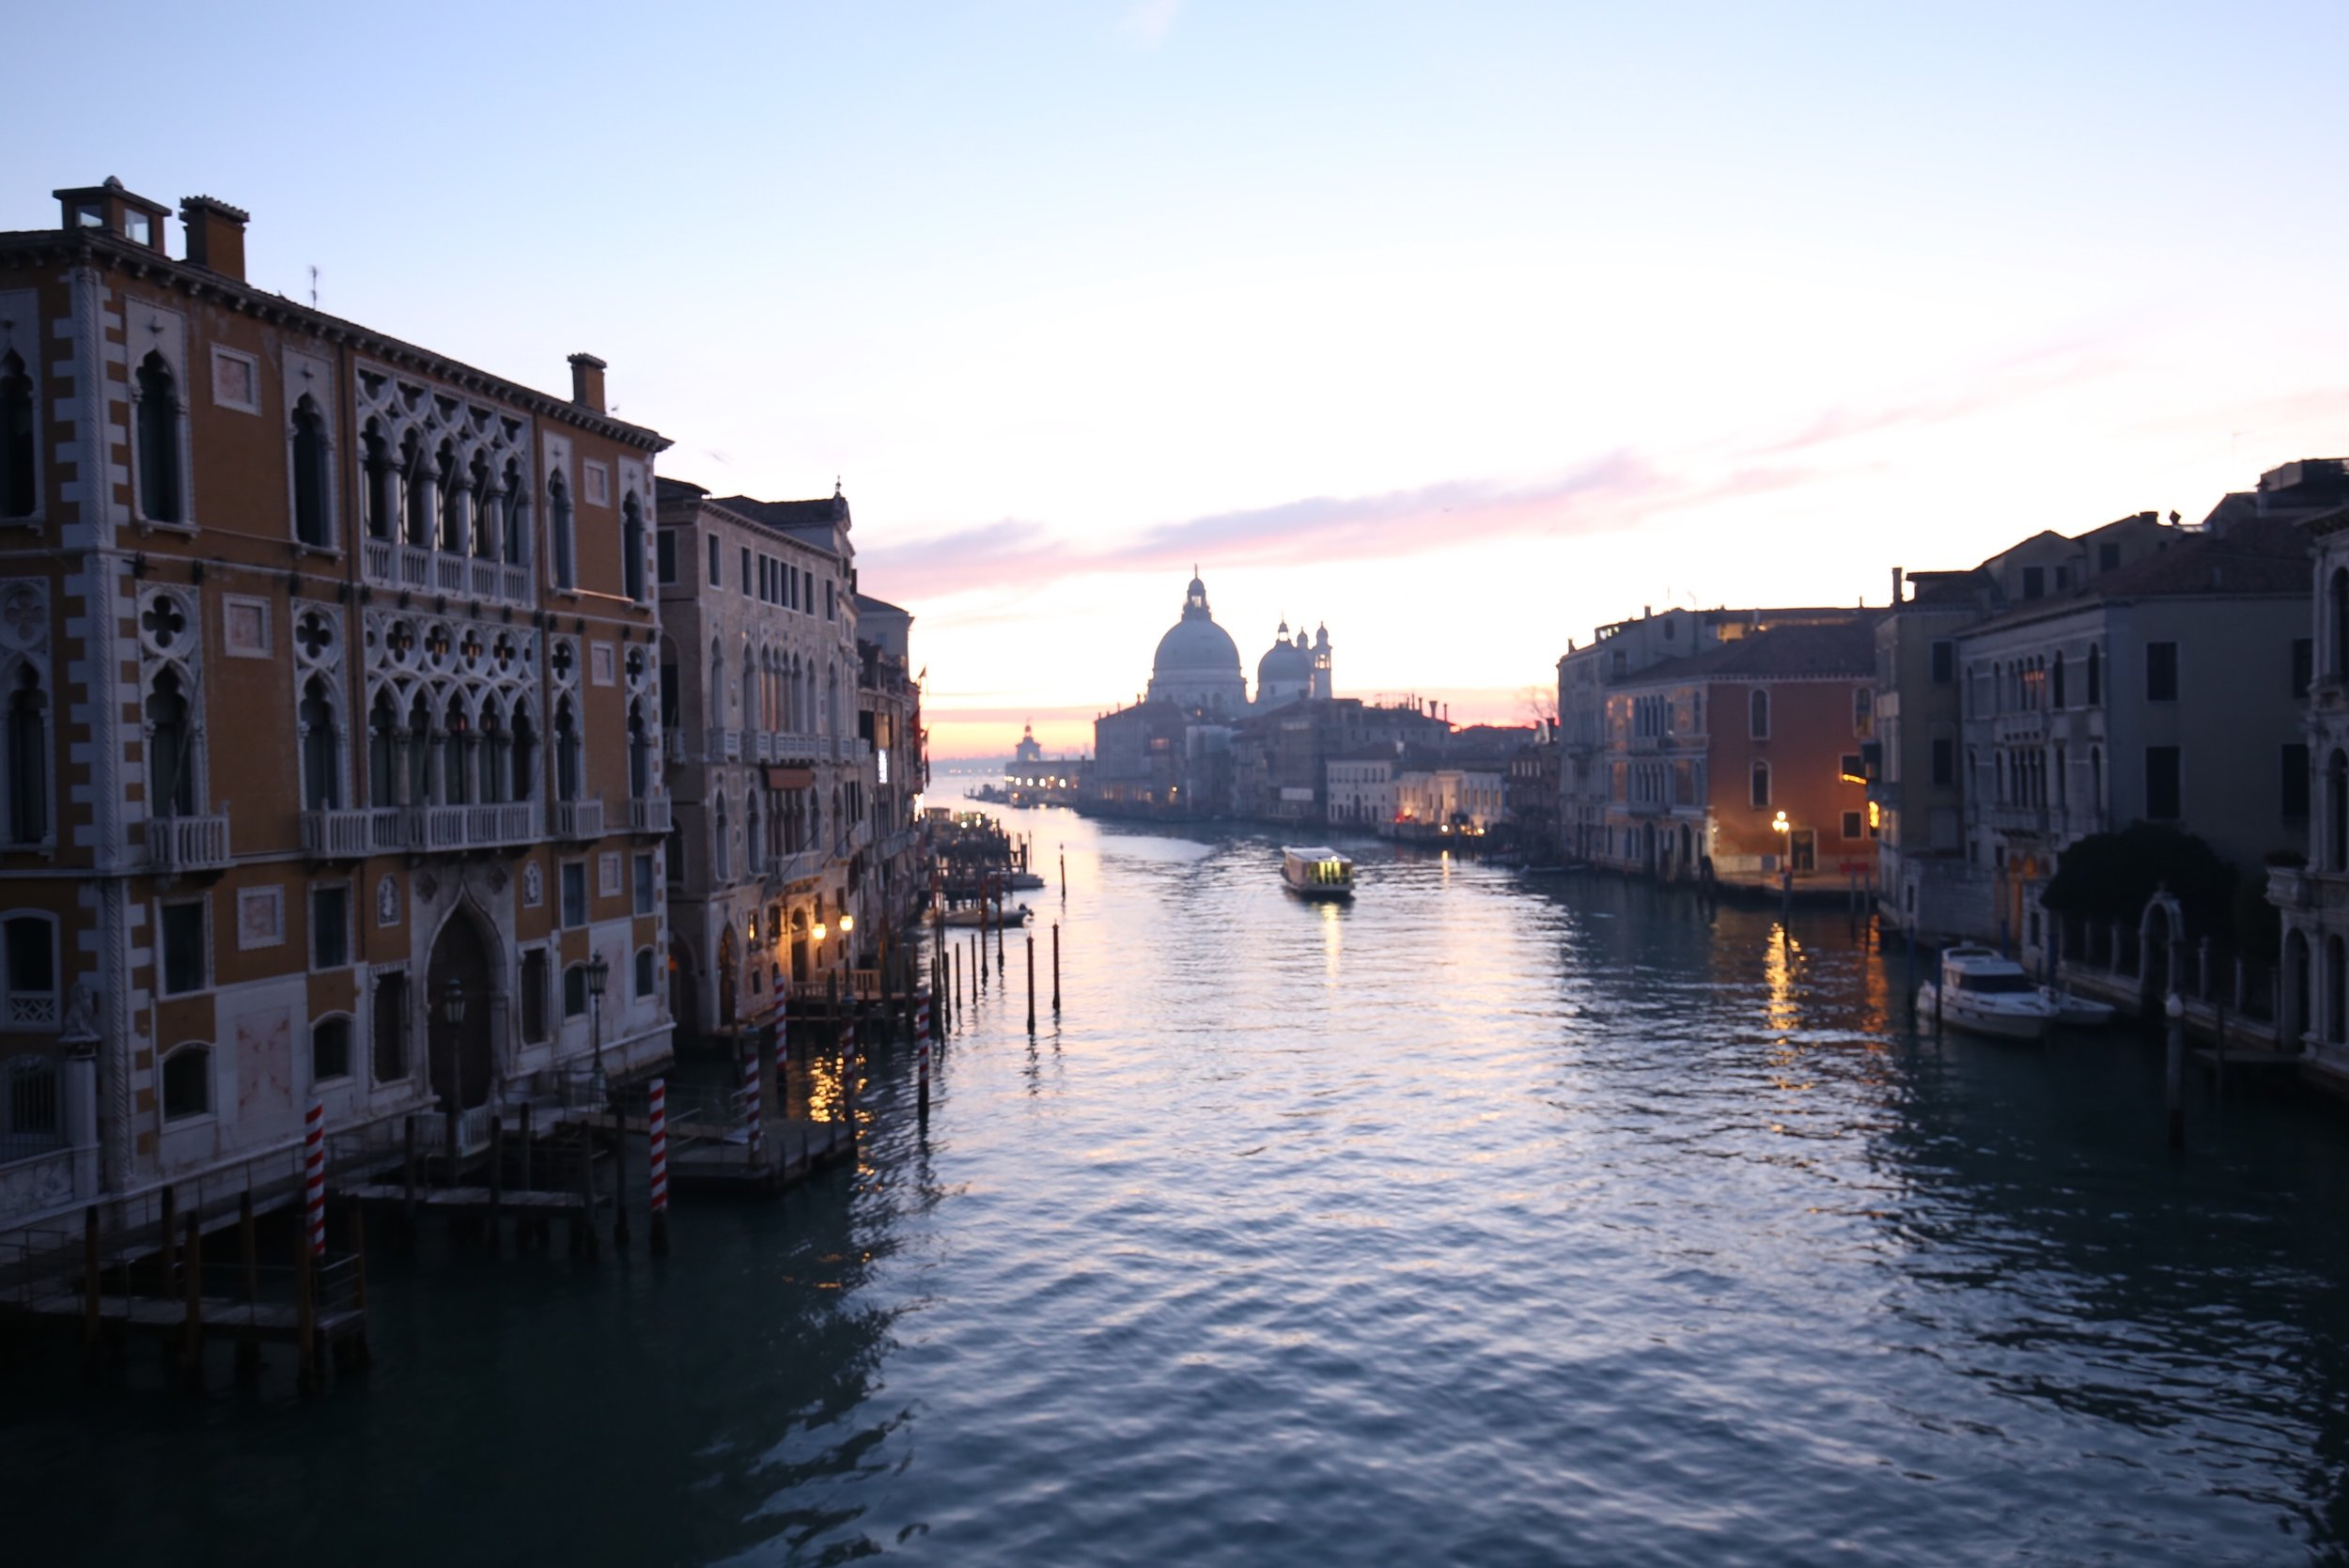 The sun peeks out over the Grand Canal, view from the Pont dell'Accademia.